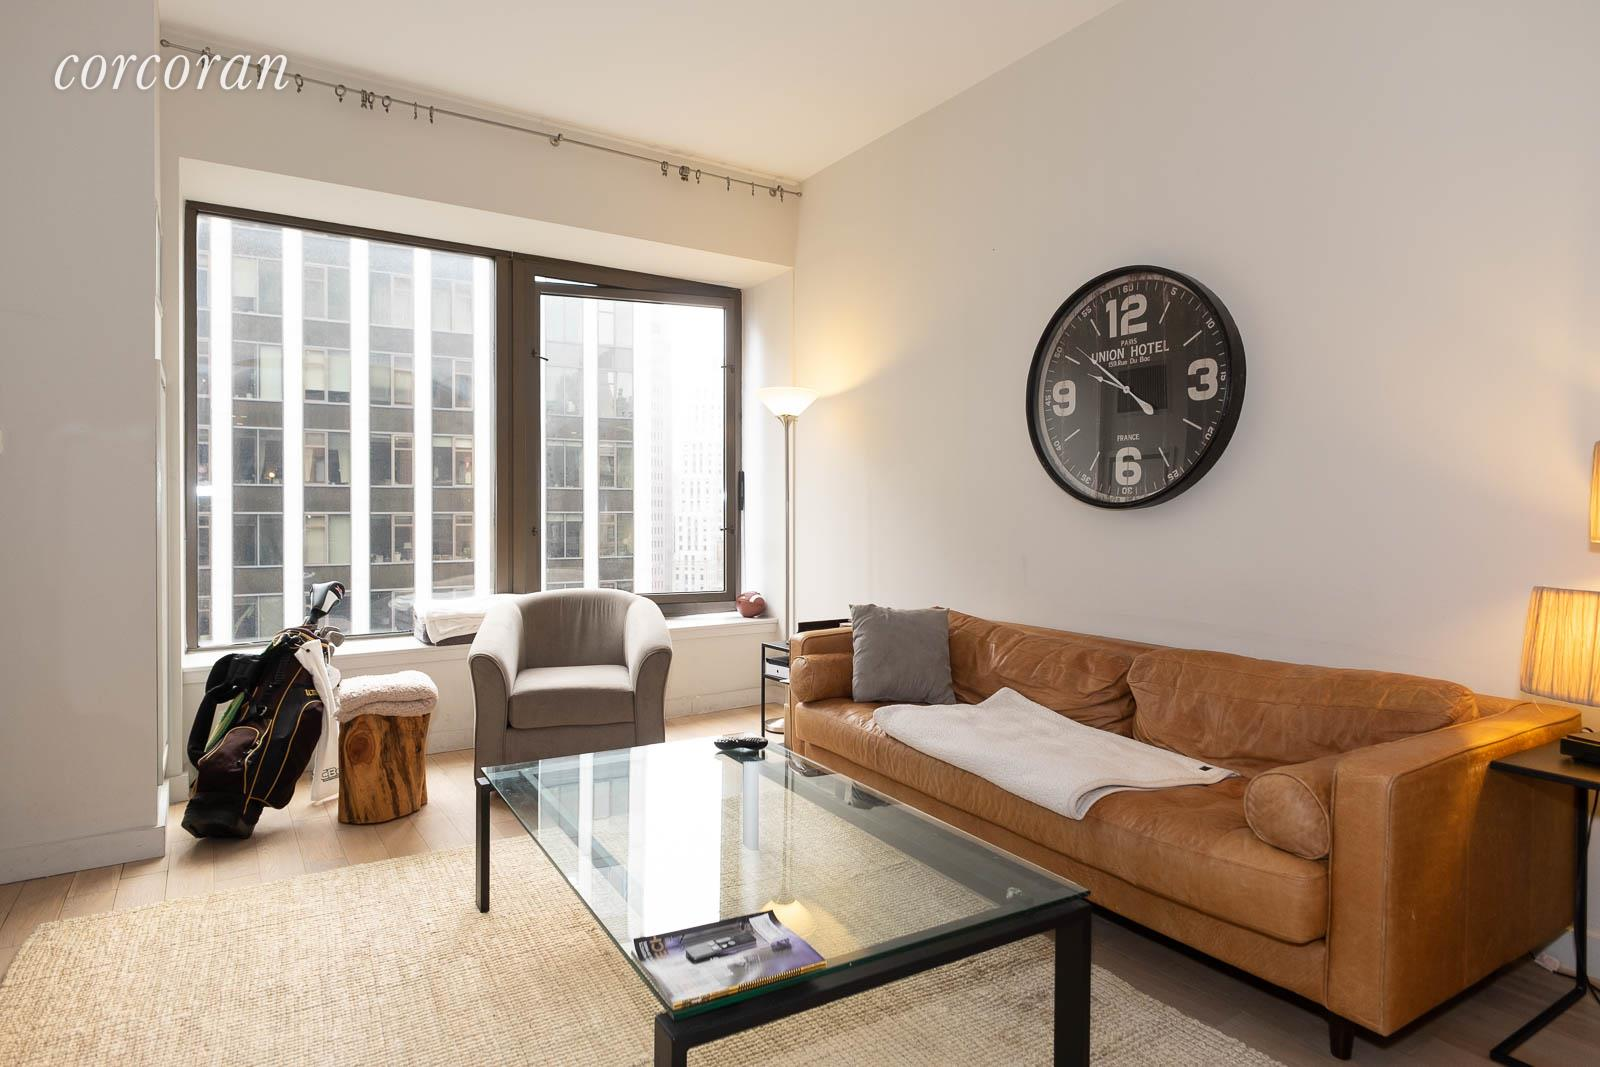 """This lavish apartment at 75 Wall Street, New York, NY 10005 is currently available for short-term or full year rental.  It can be furnished or rented unfurnished as you please. In-person, virtual and video tours are available. This vast Studio with a """"Home-Office"""" has everything one needs from a washer/dryer to a fully equipped kitchen with an island and a modern bathroom with a tub as well as a shower stall.  The main room looks over a small triangular park with lovely South-Western light. The passage from the front door has plenty of closets and one with the Bosch washer and dryer stack.  The Home-Office area which is approximately 81/2' by 81/2'  can easily accommodate at queen-sized bed and some additional furniture,This is a full-service building which was a """"new development"""" about ten years ago, so there are some very high end amenities and finishes.  Currently, the roof deck and lounge are open with social distancing. Residents are entitled free access to the breathtaking roof deck which looks in all directions over the New York Harbor, East River, all the bridges and more,  There is a full gym which is open by appointment, lounges, laundry and more.Lock in the rent on this great apartment for 18 months or just rent for 3! Ask about additional possibilities."""